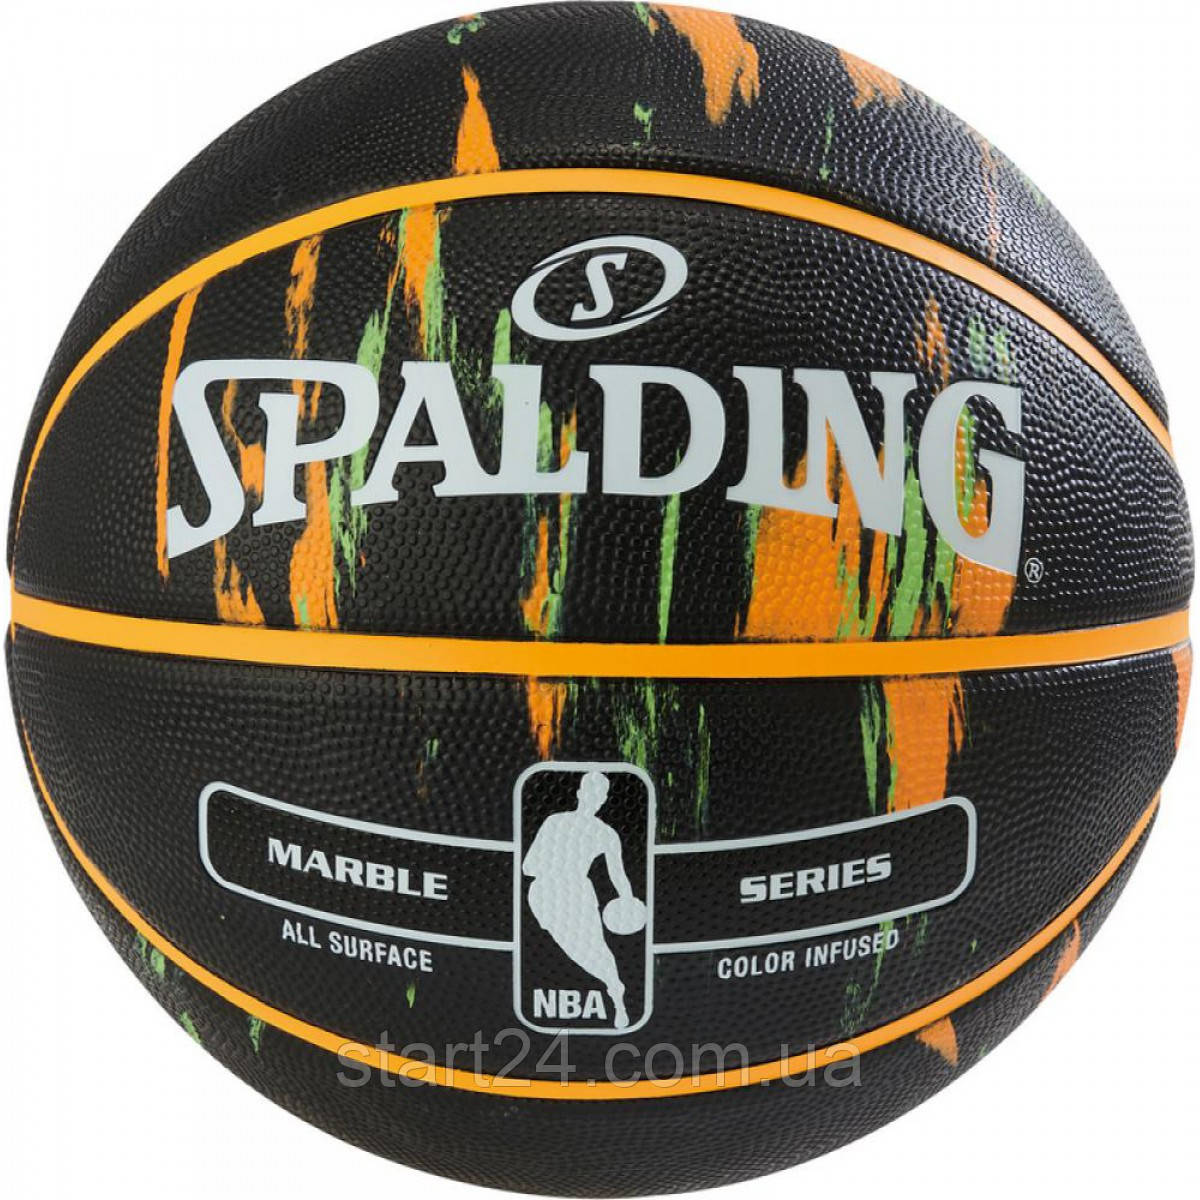 М'яч баскетбольний Spalding NBA Marble Outdoor Black/Orange/Green Size 7